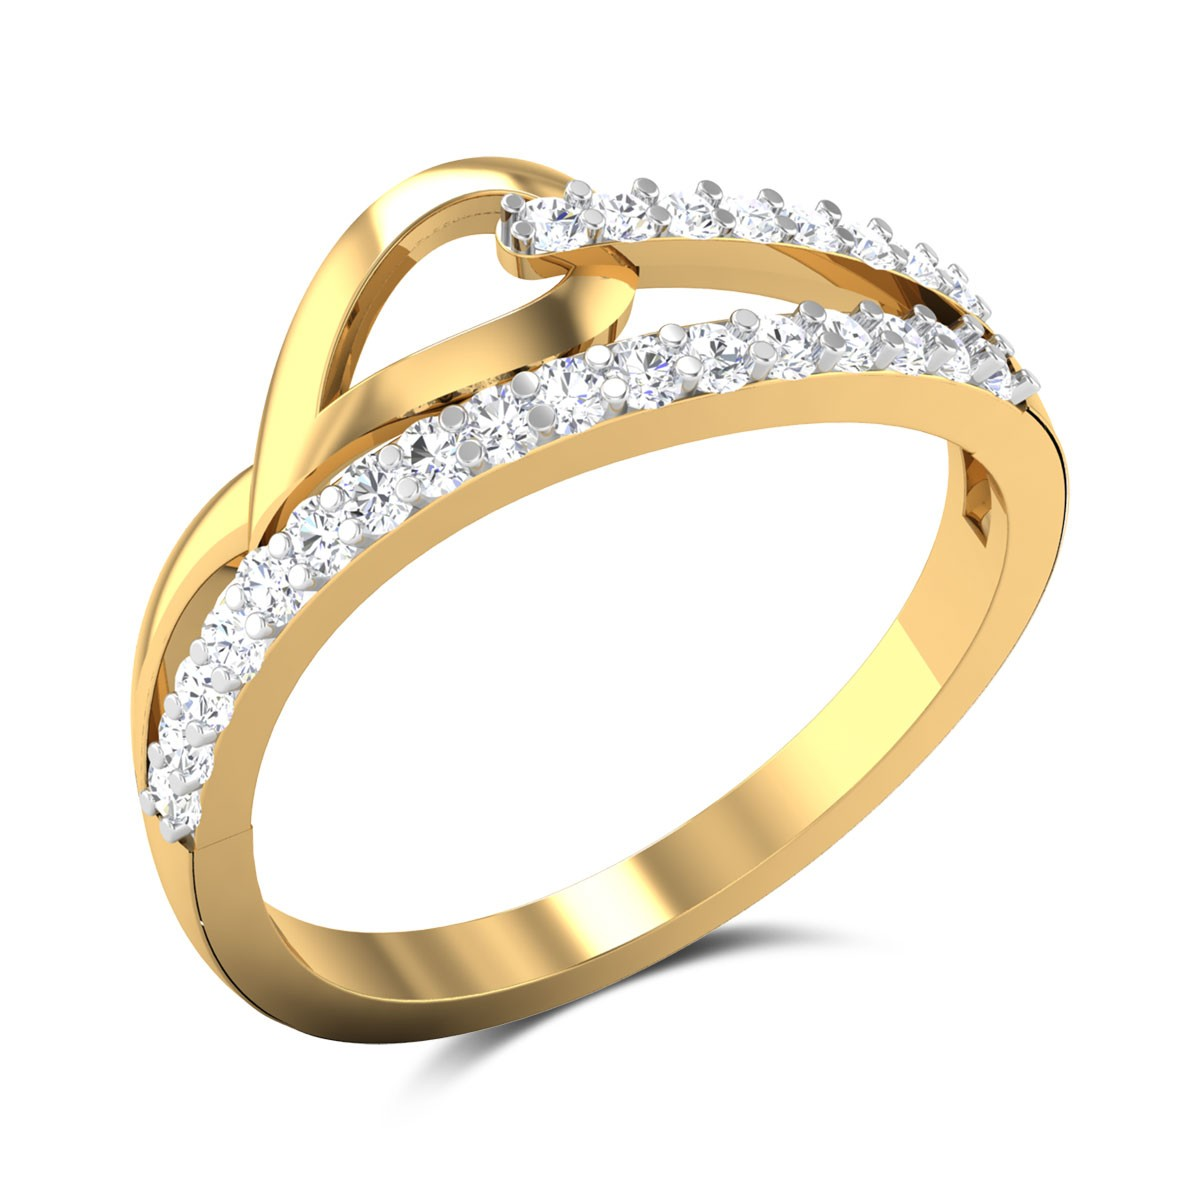 Kiana Diamond Ring